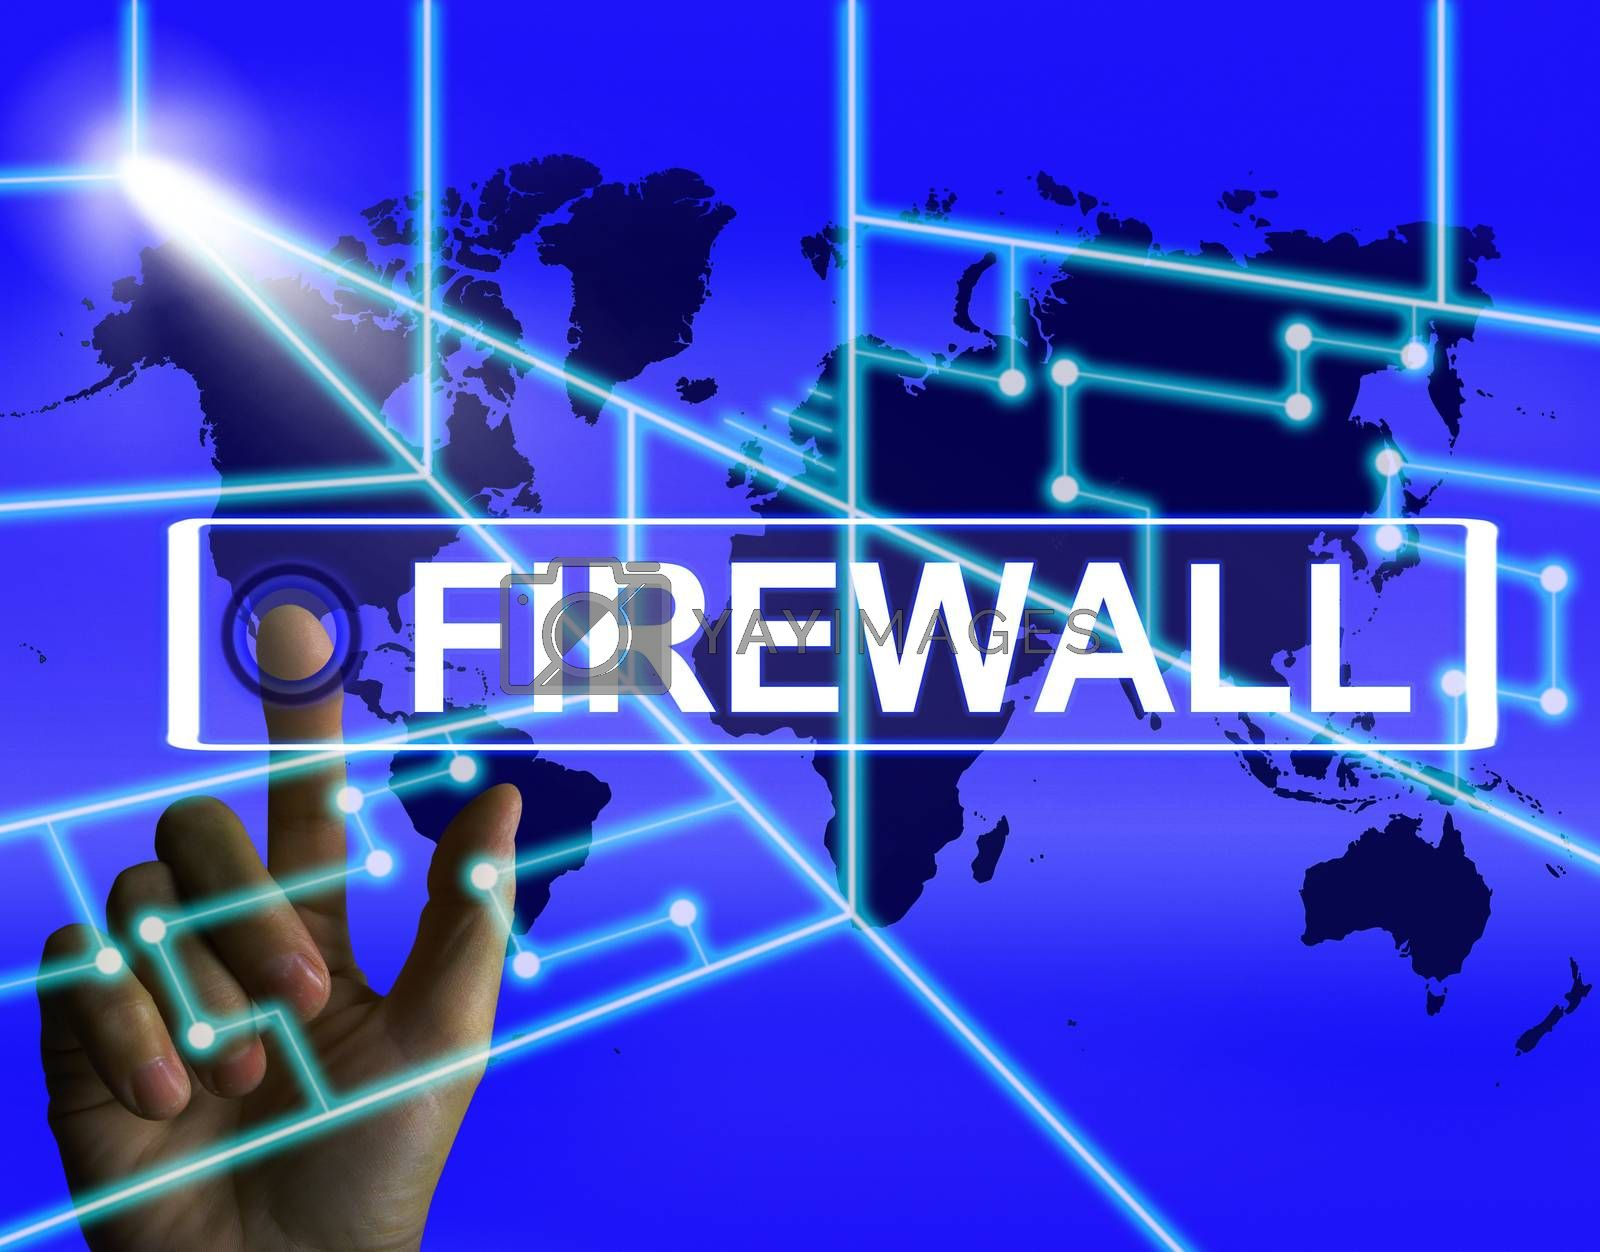 Firewall Screen Refers to Internet Safety Security and Protectio by stuartmiles